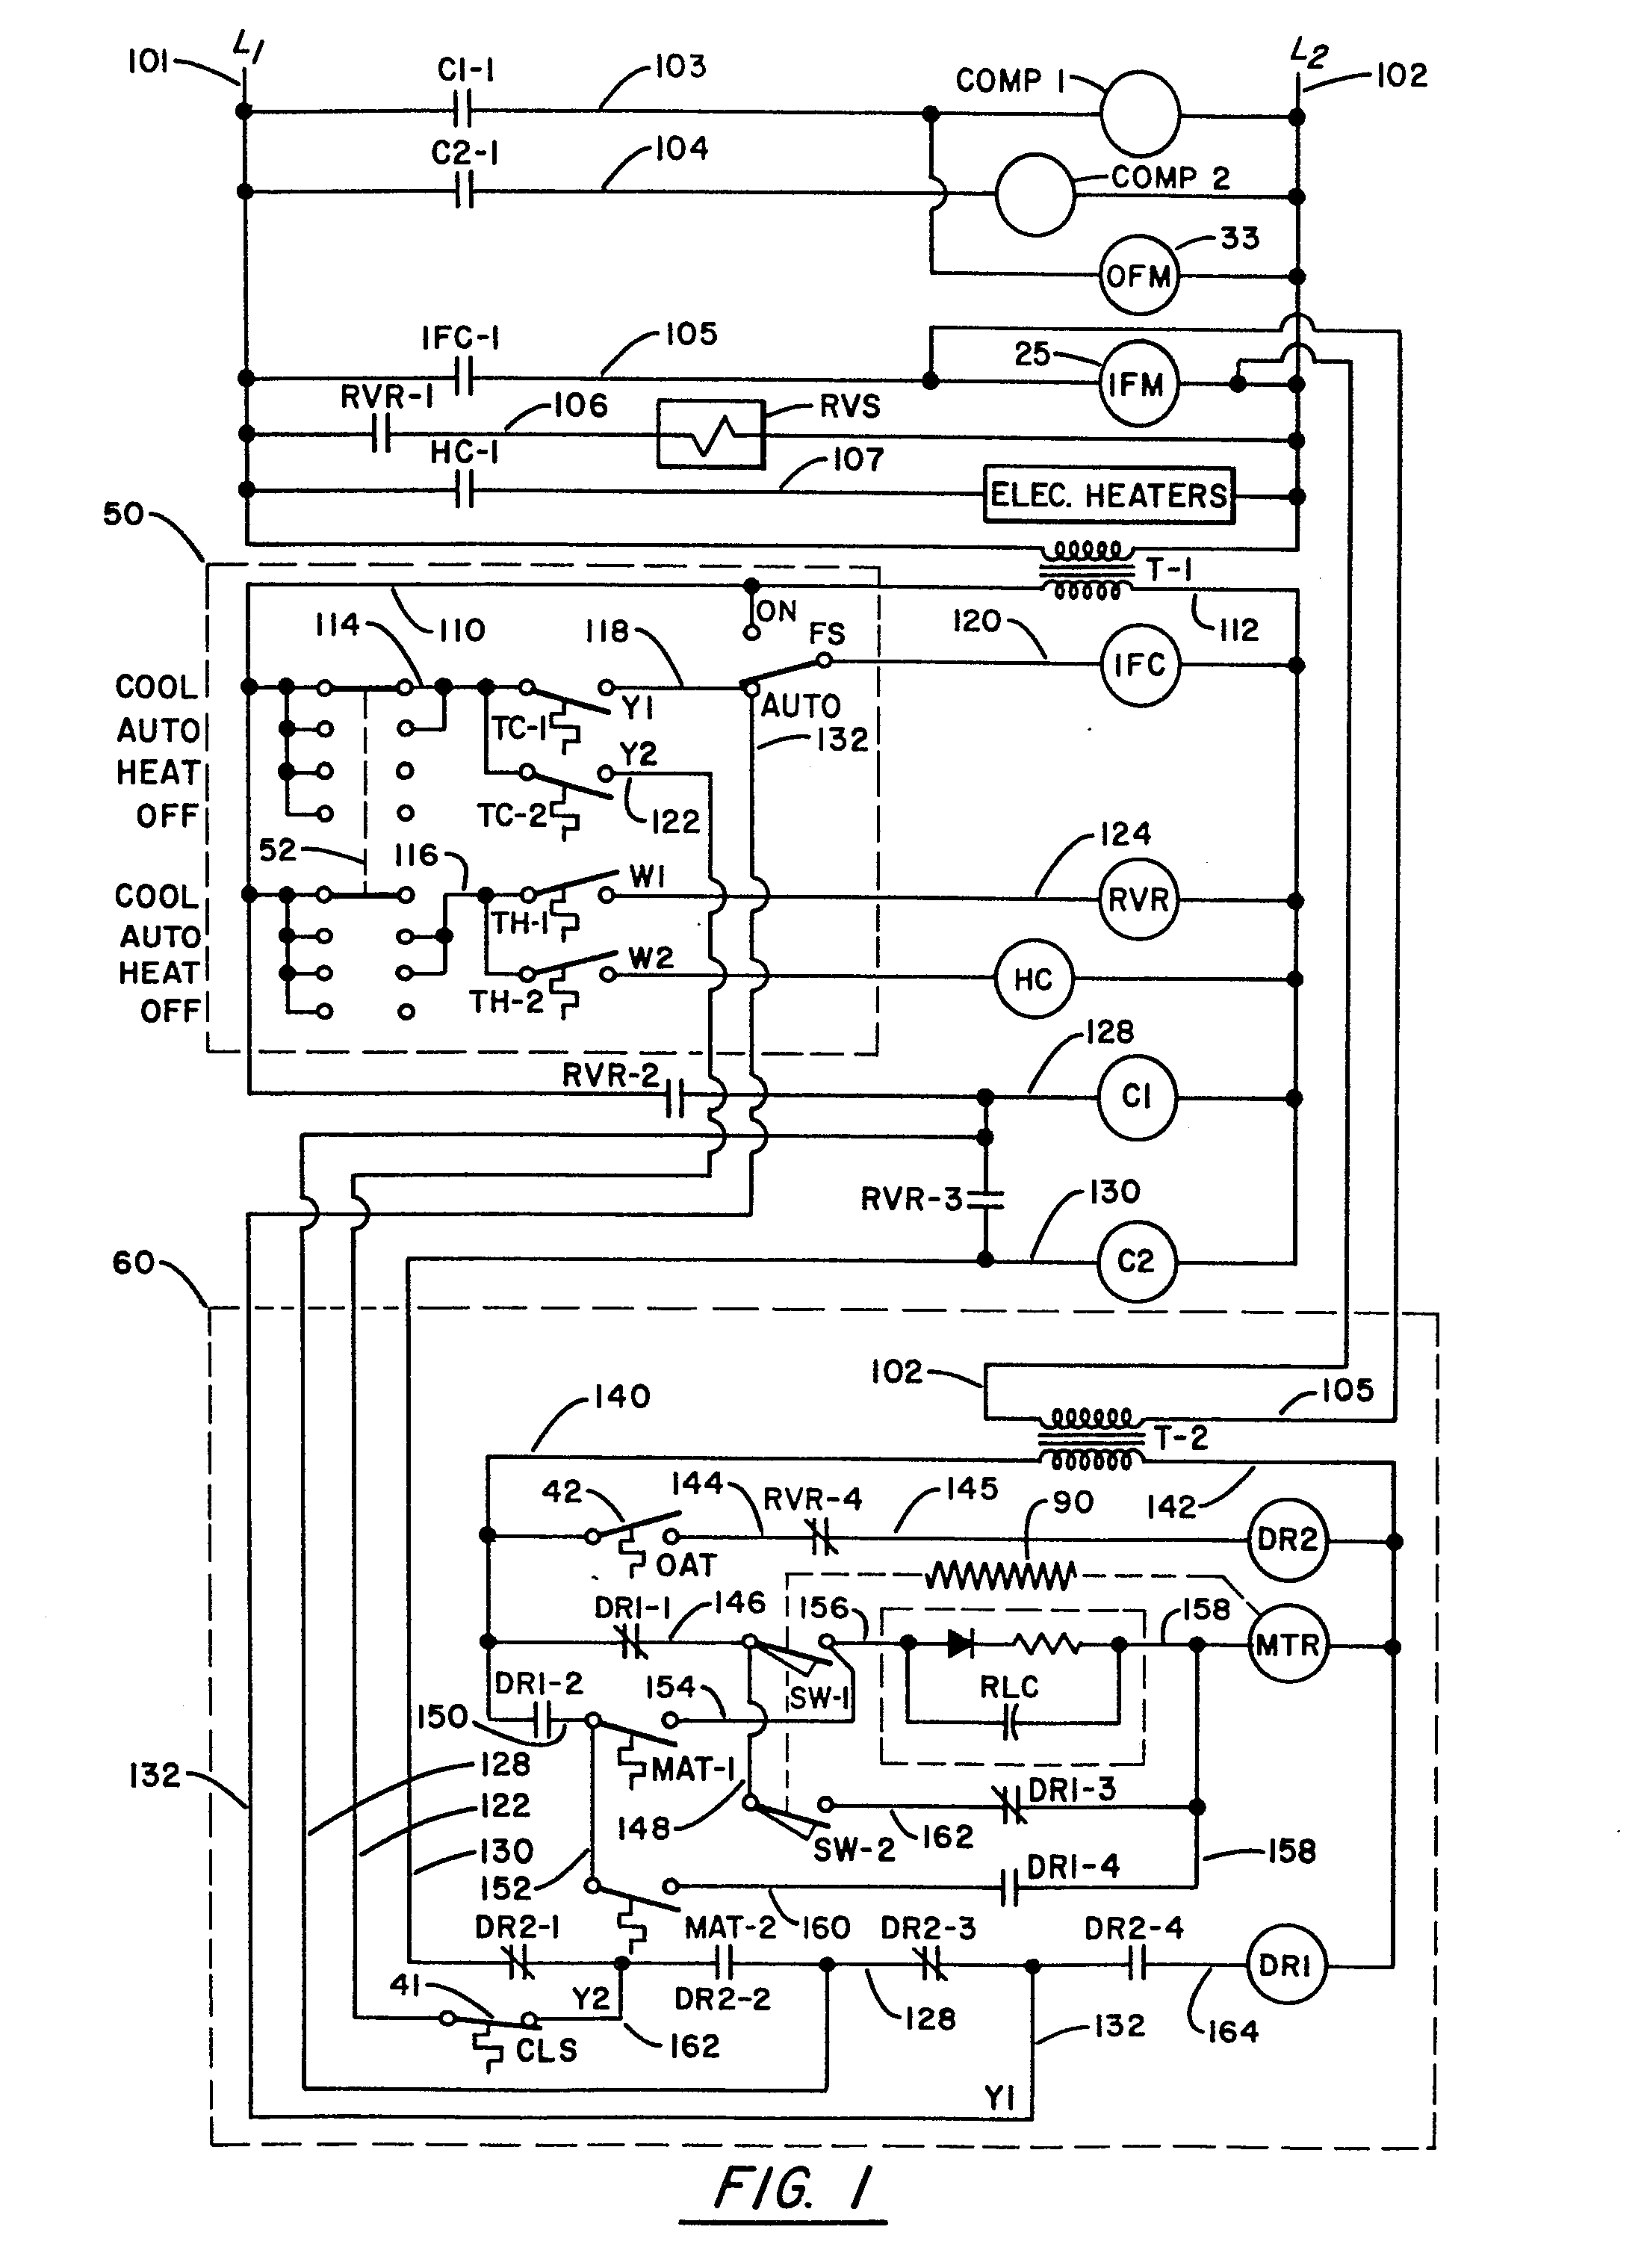 imgf0001?resize\\\\\\\\\\\\\\\\\\\\\\\\\\\\\=665%2C914 john deere 425 wiring diagram wiring diagrams john deere 425 wiring diagram download at bayanpartner.co